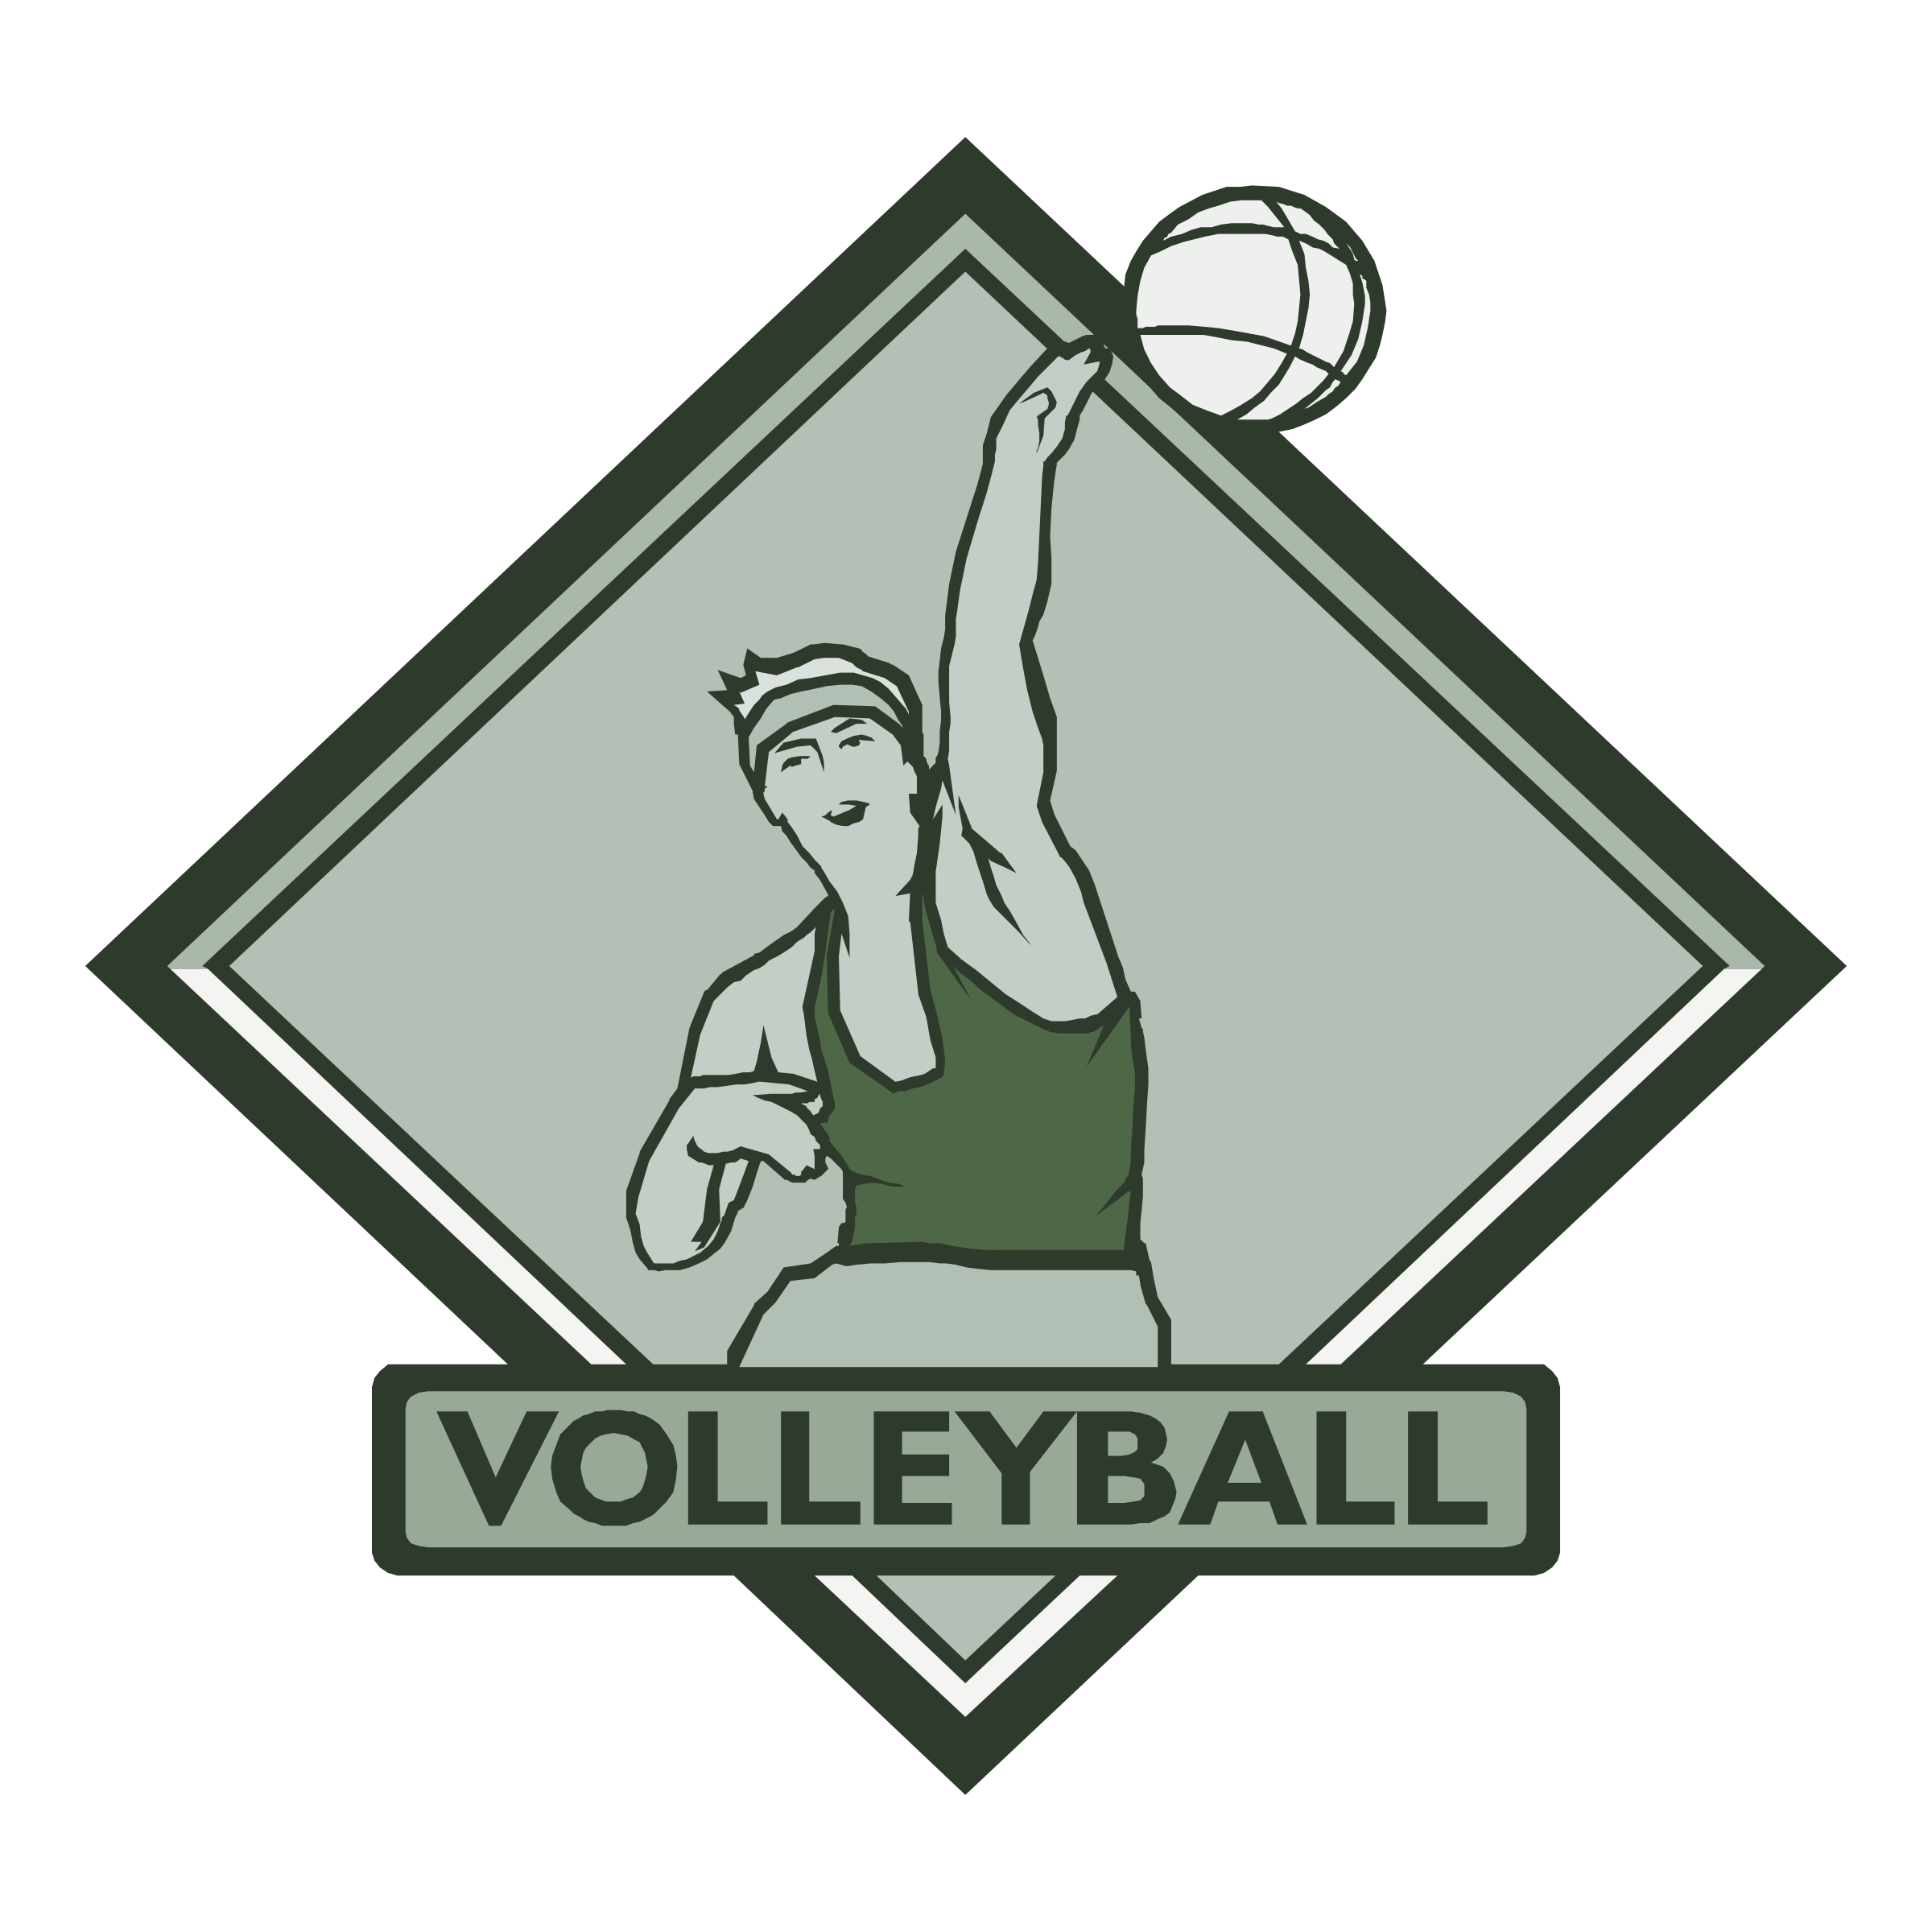 Volleyball Logo Png Transparent Svg Vector Freebie Supply